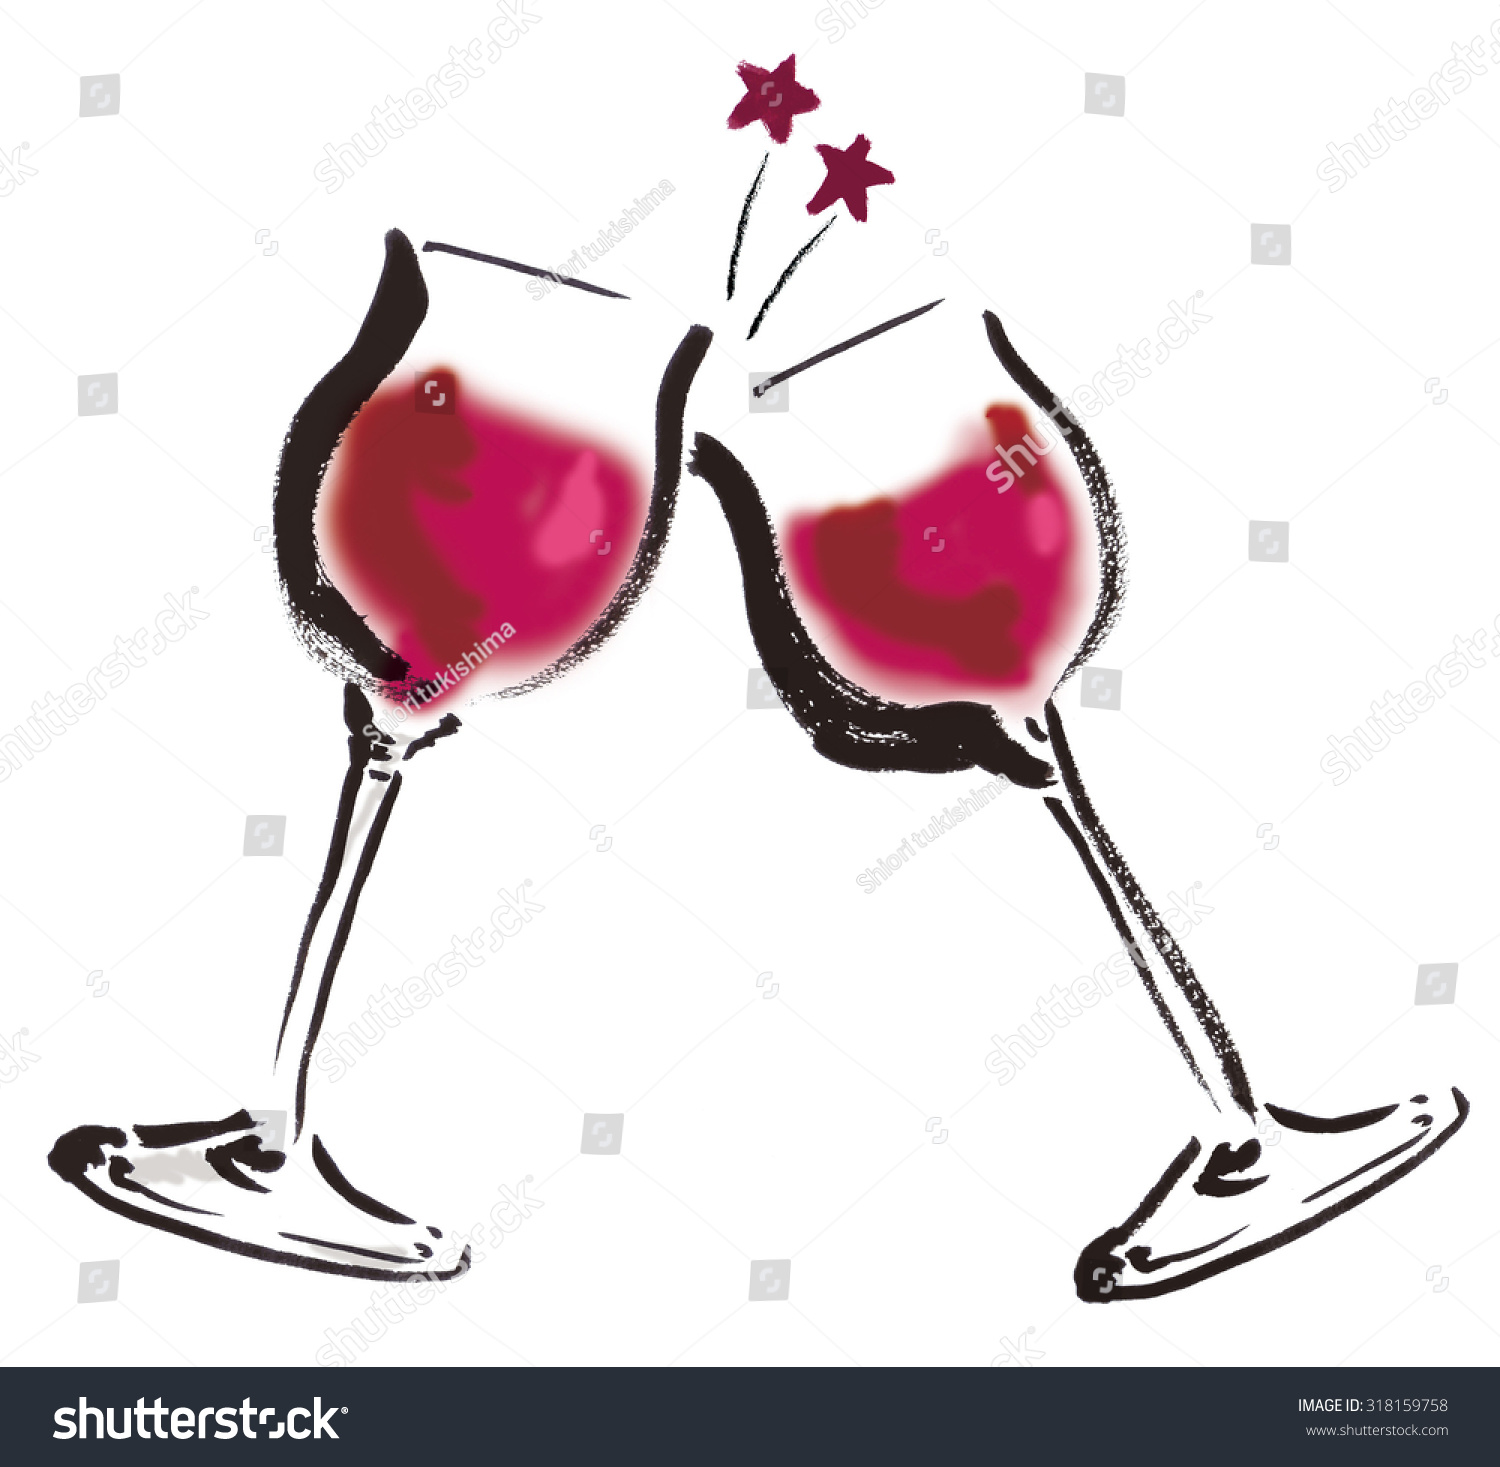 Winered Wineglass Winecheers Stock Illustration 318159758 ...